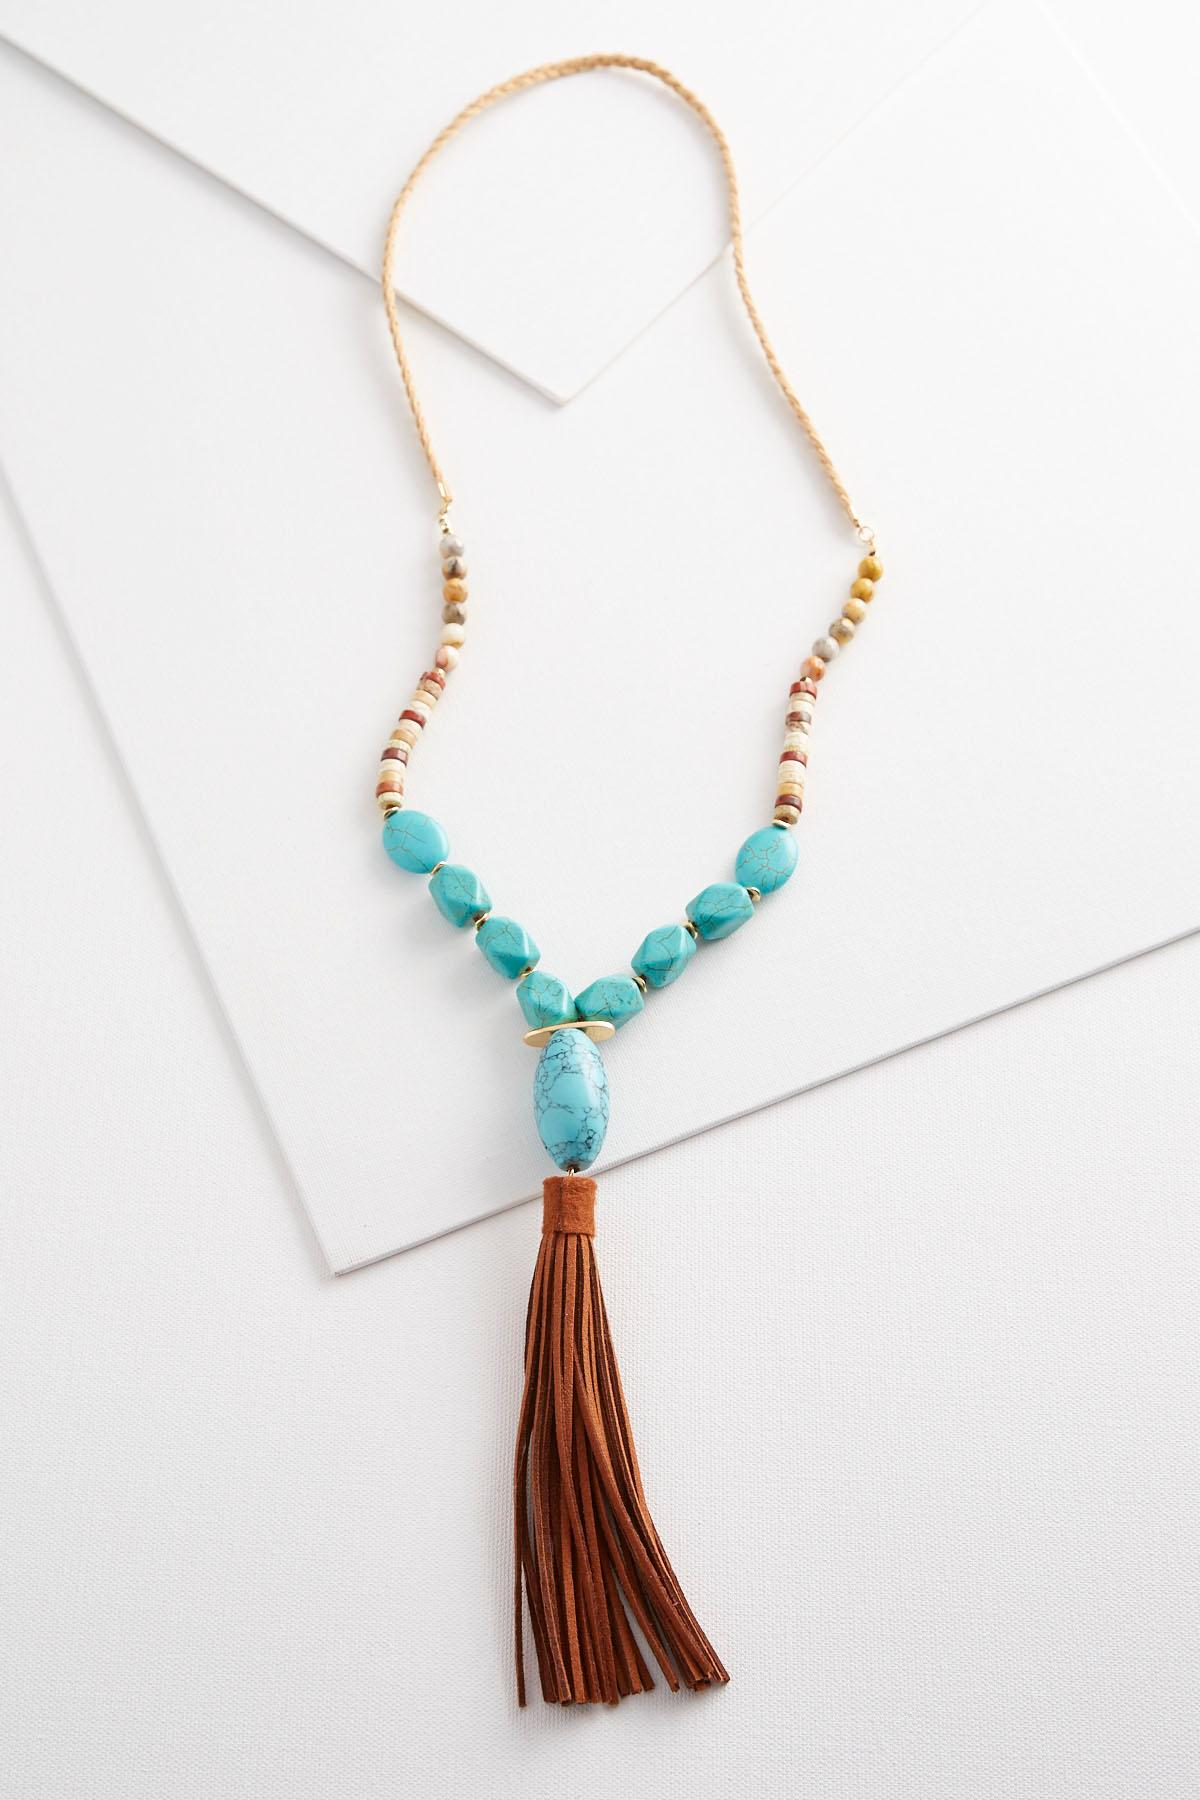 necklace fairhaven jewelry tassel ivory duo